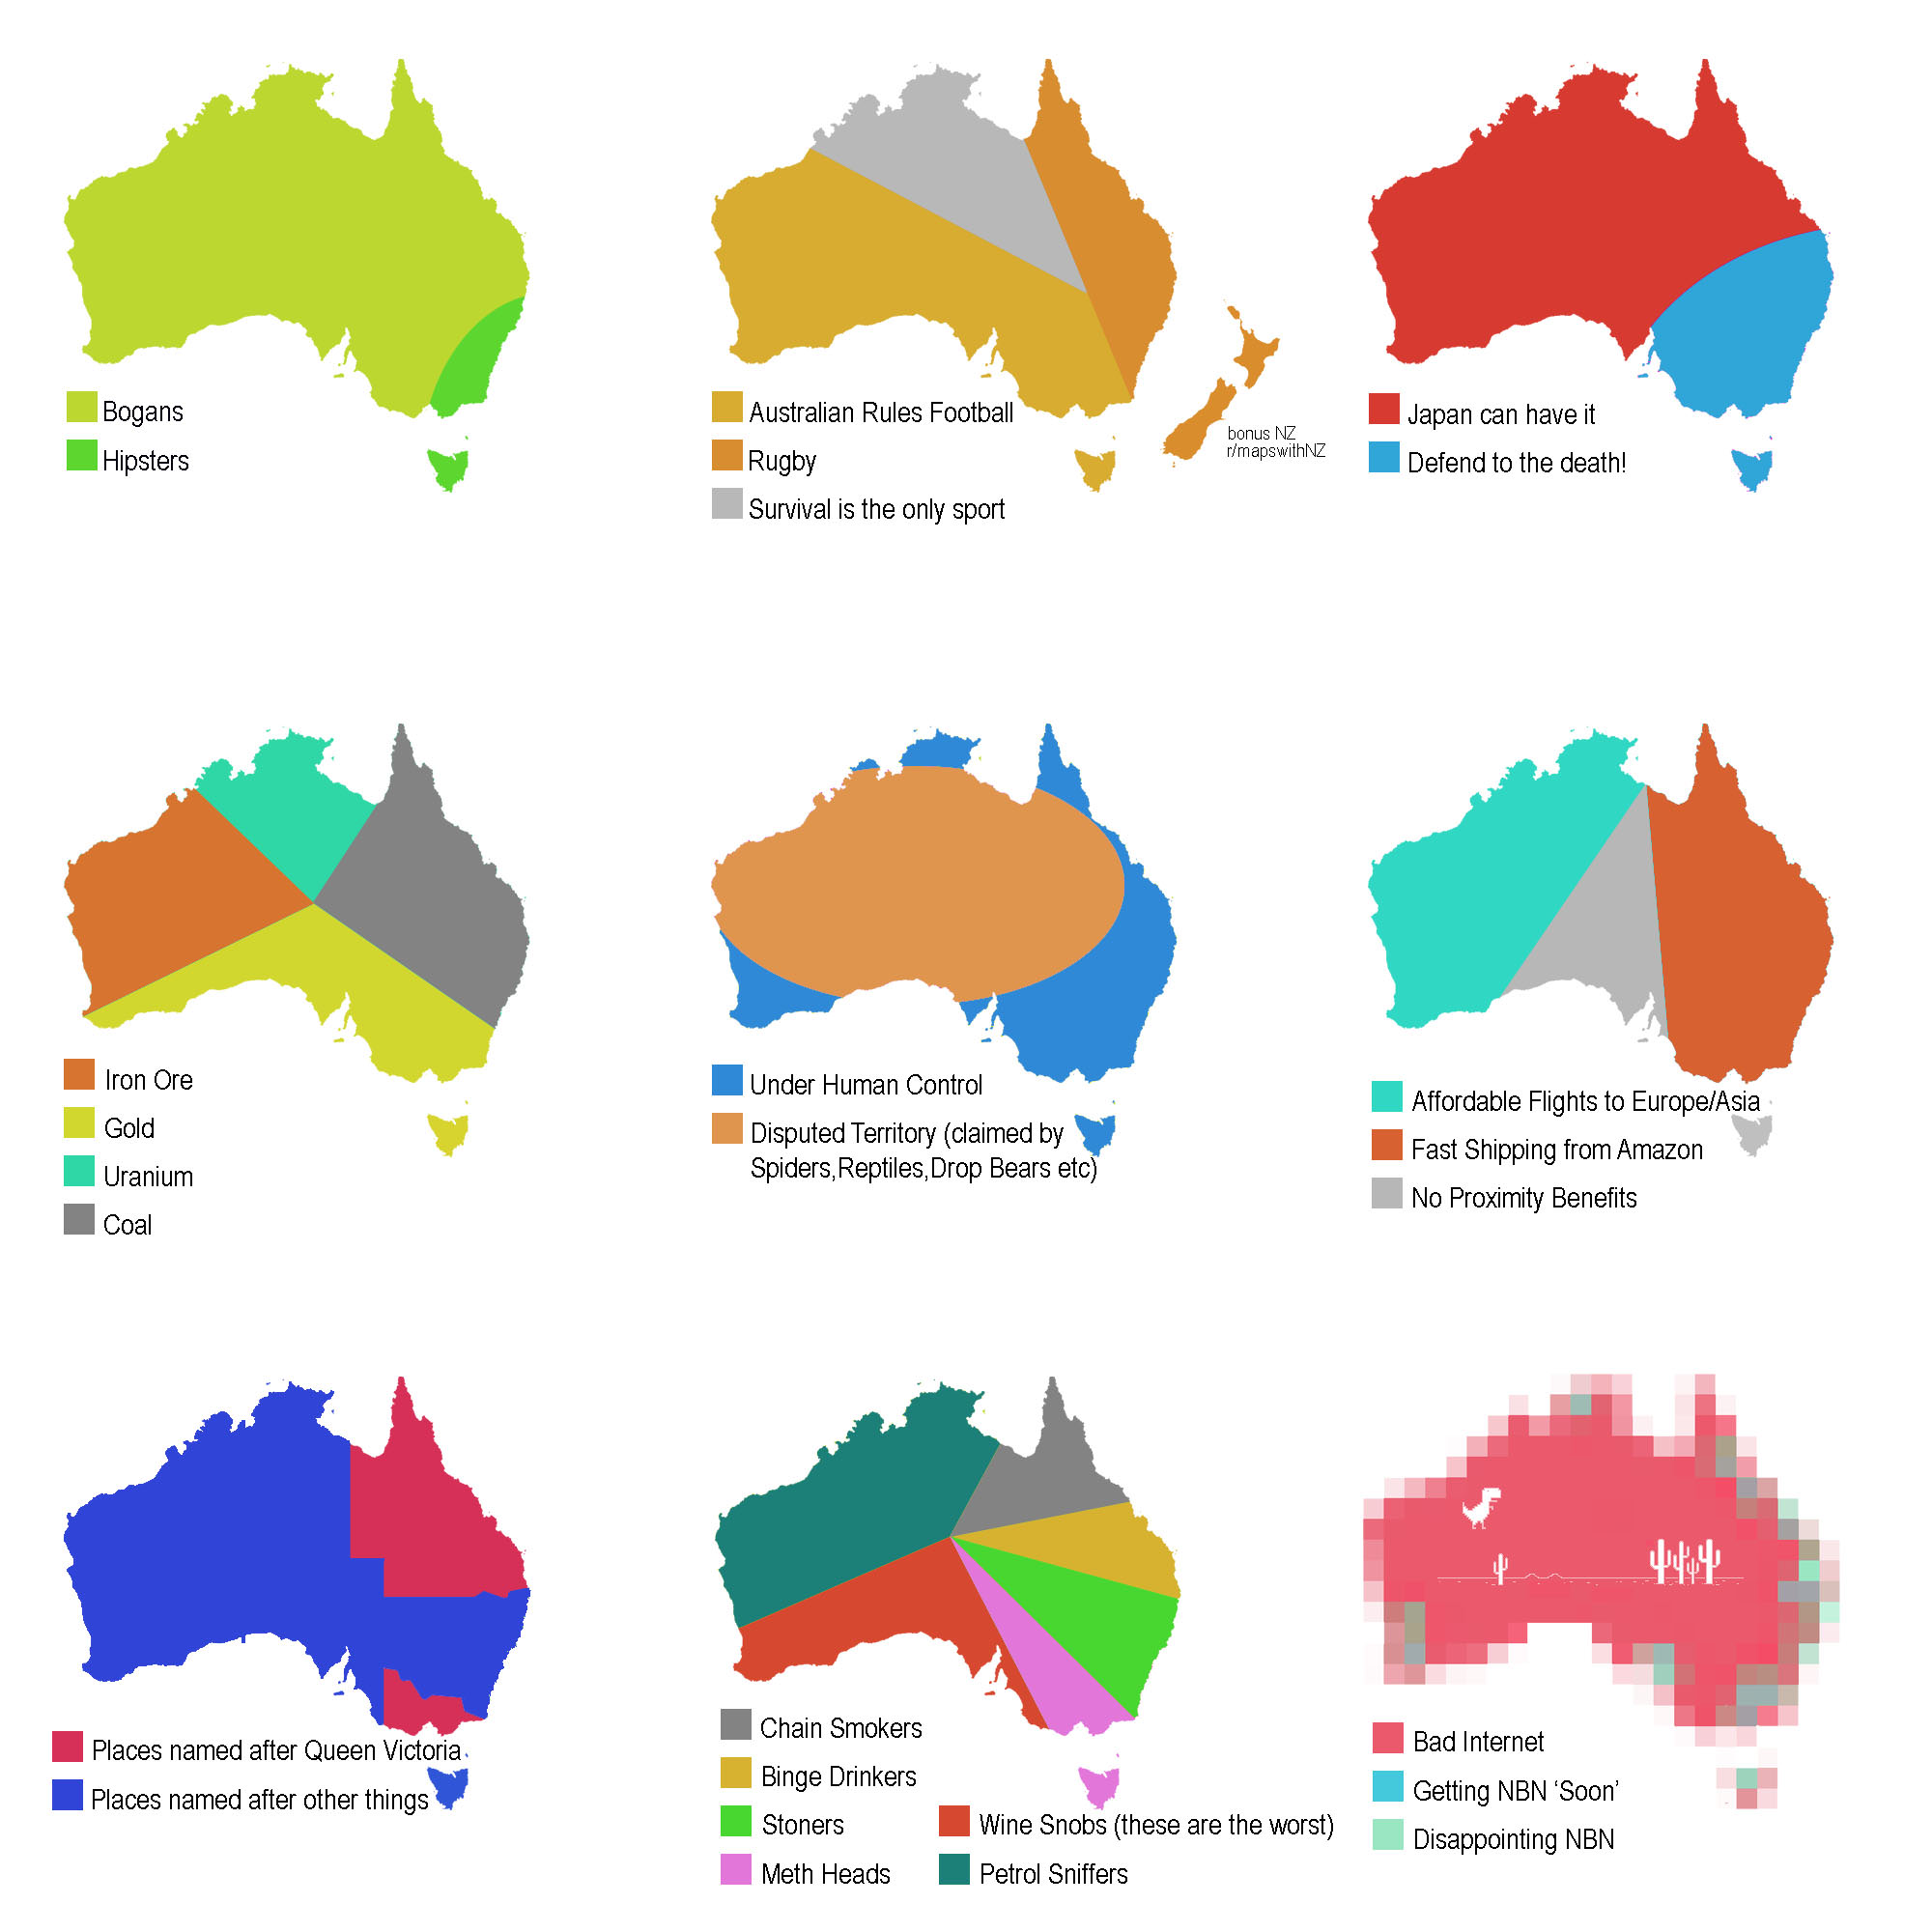 Find my foreclosure date in Australia